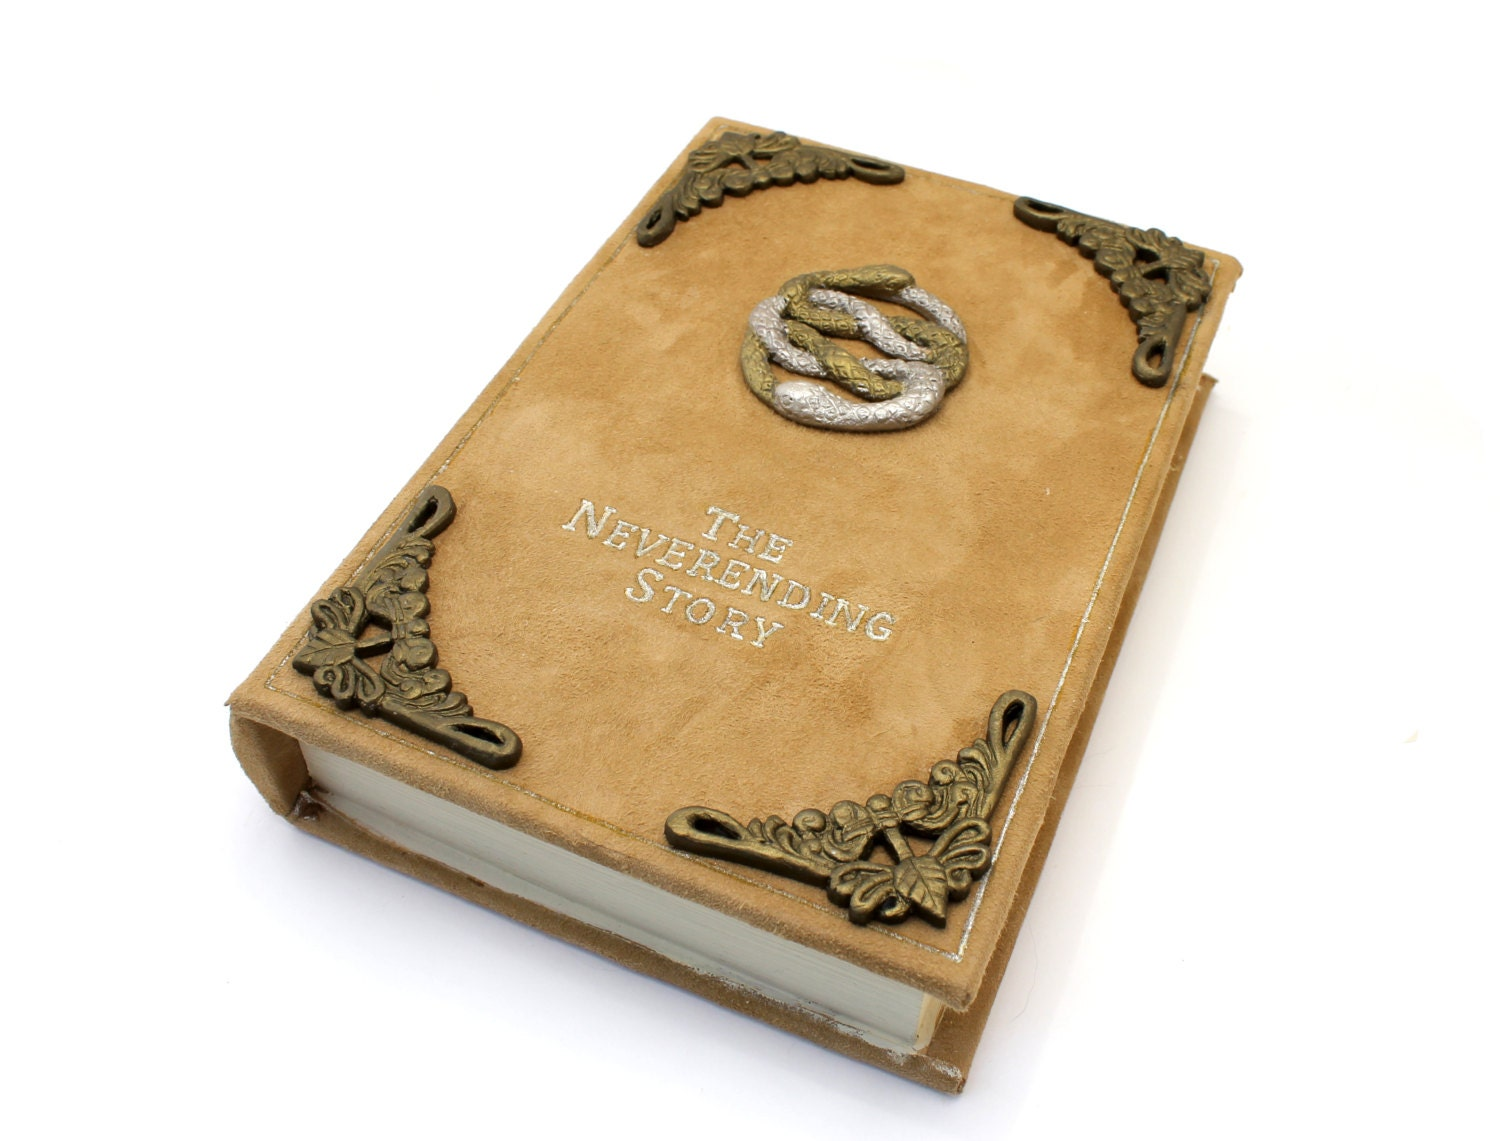 Book Cover Handmade Jewellery : The neverending story book jewelry box decorative